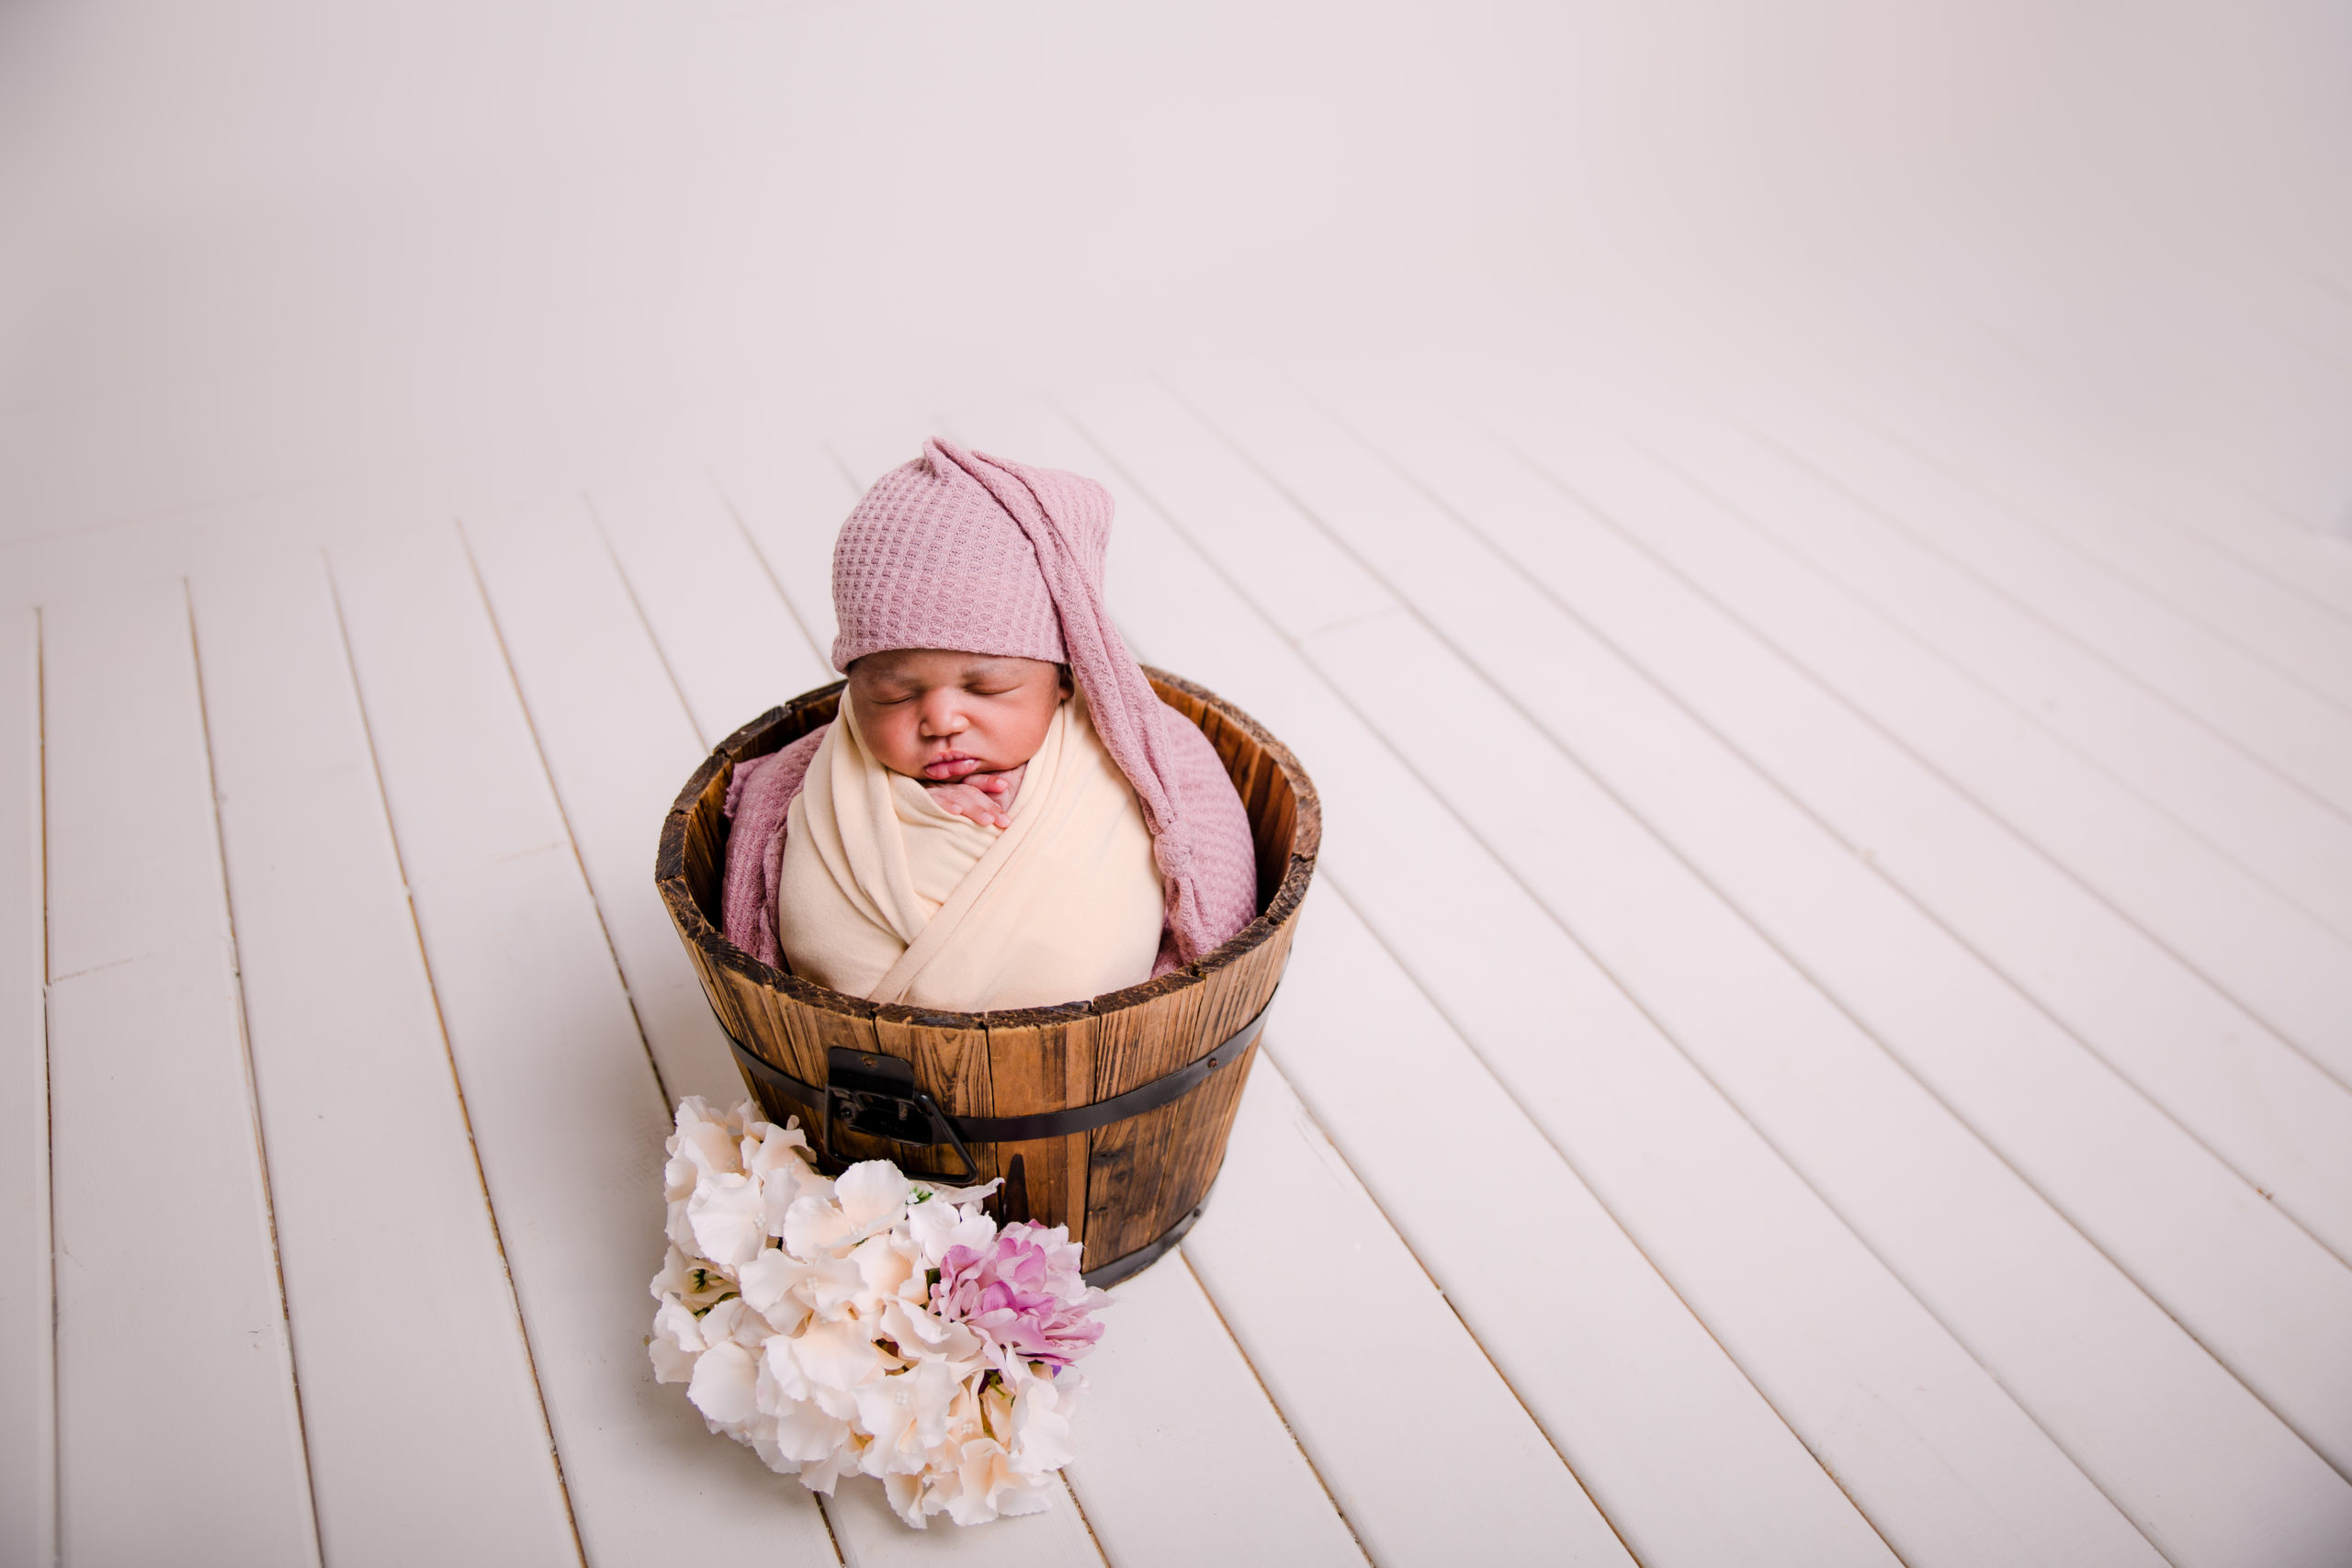 Black baby girl during her first newborn photo session in Wimbledon Studio, Baby wrapped in a beige wrap with pink hat in a bucket pose baby photo shoot in south west London SW19